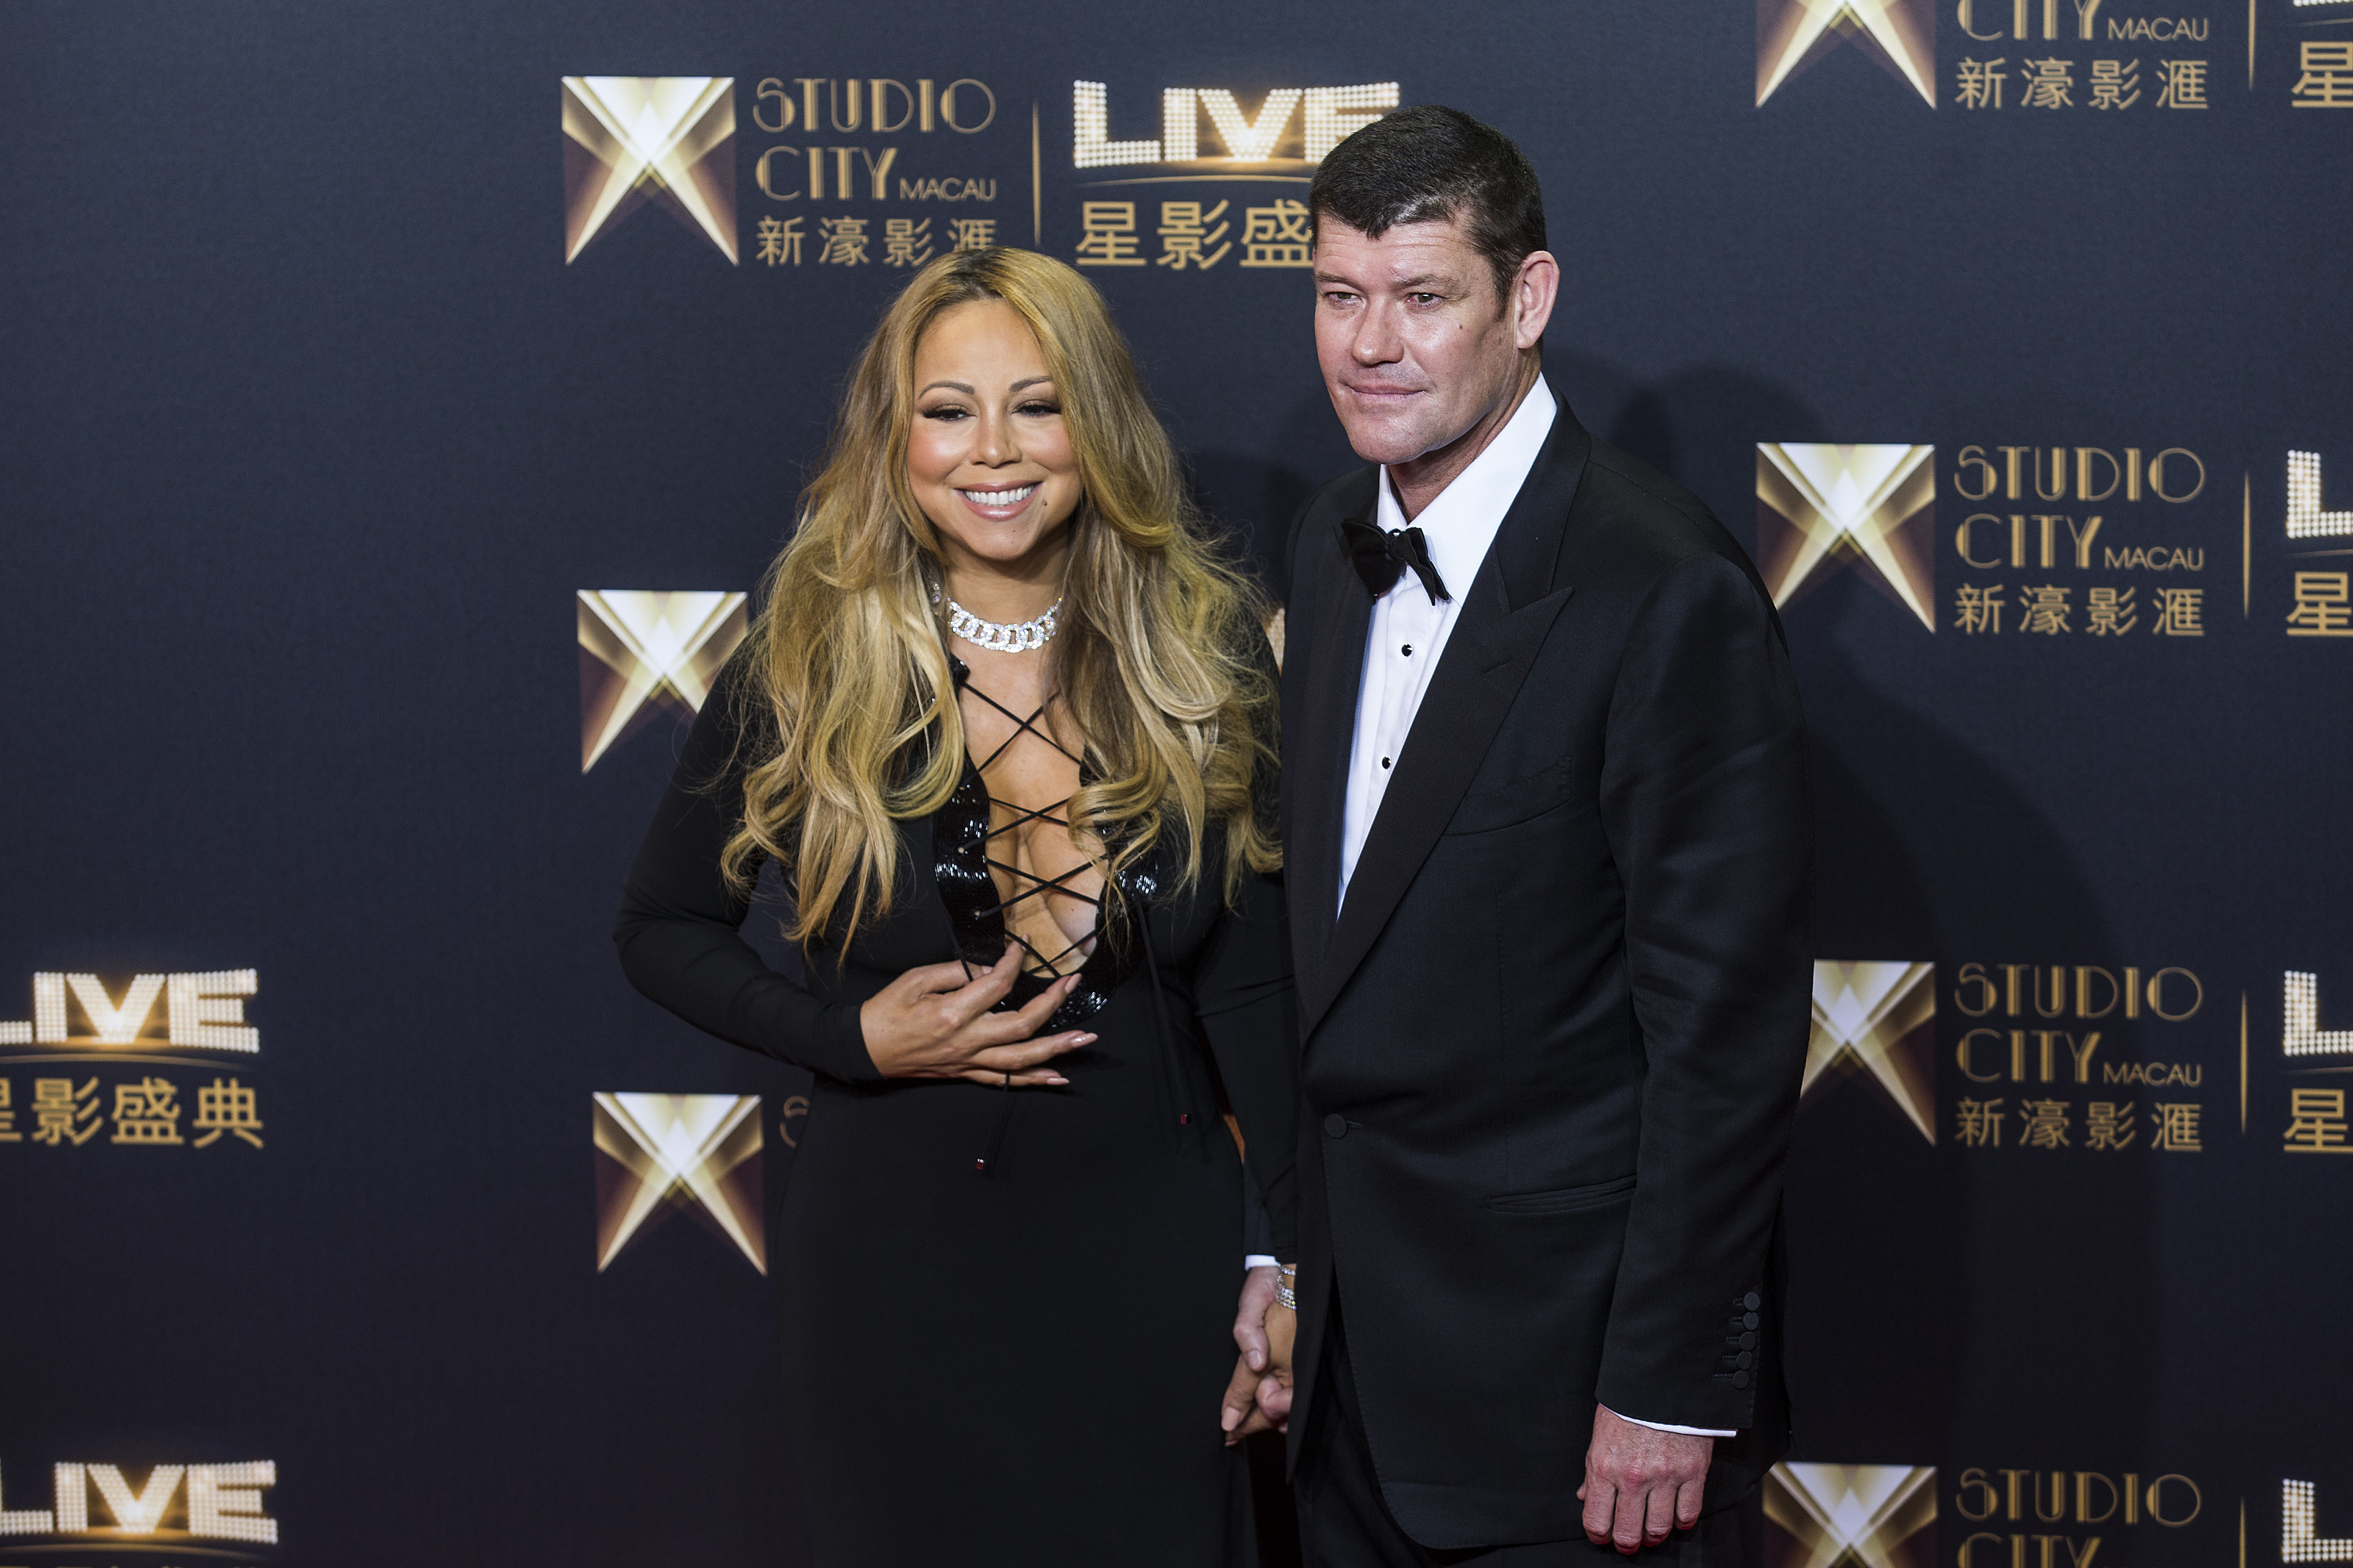 James Packer, co-chairman of Melco Crown Entertainment Ltd. and singer Mariah Carey stand for photographs in Macau, China, on Oct. 27, 2015.